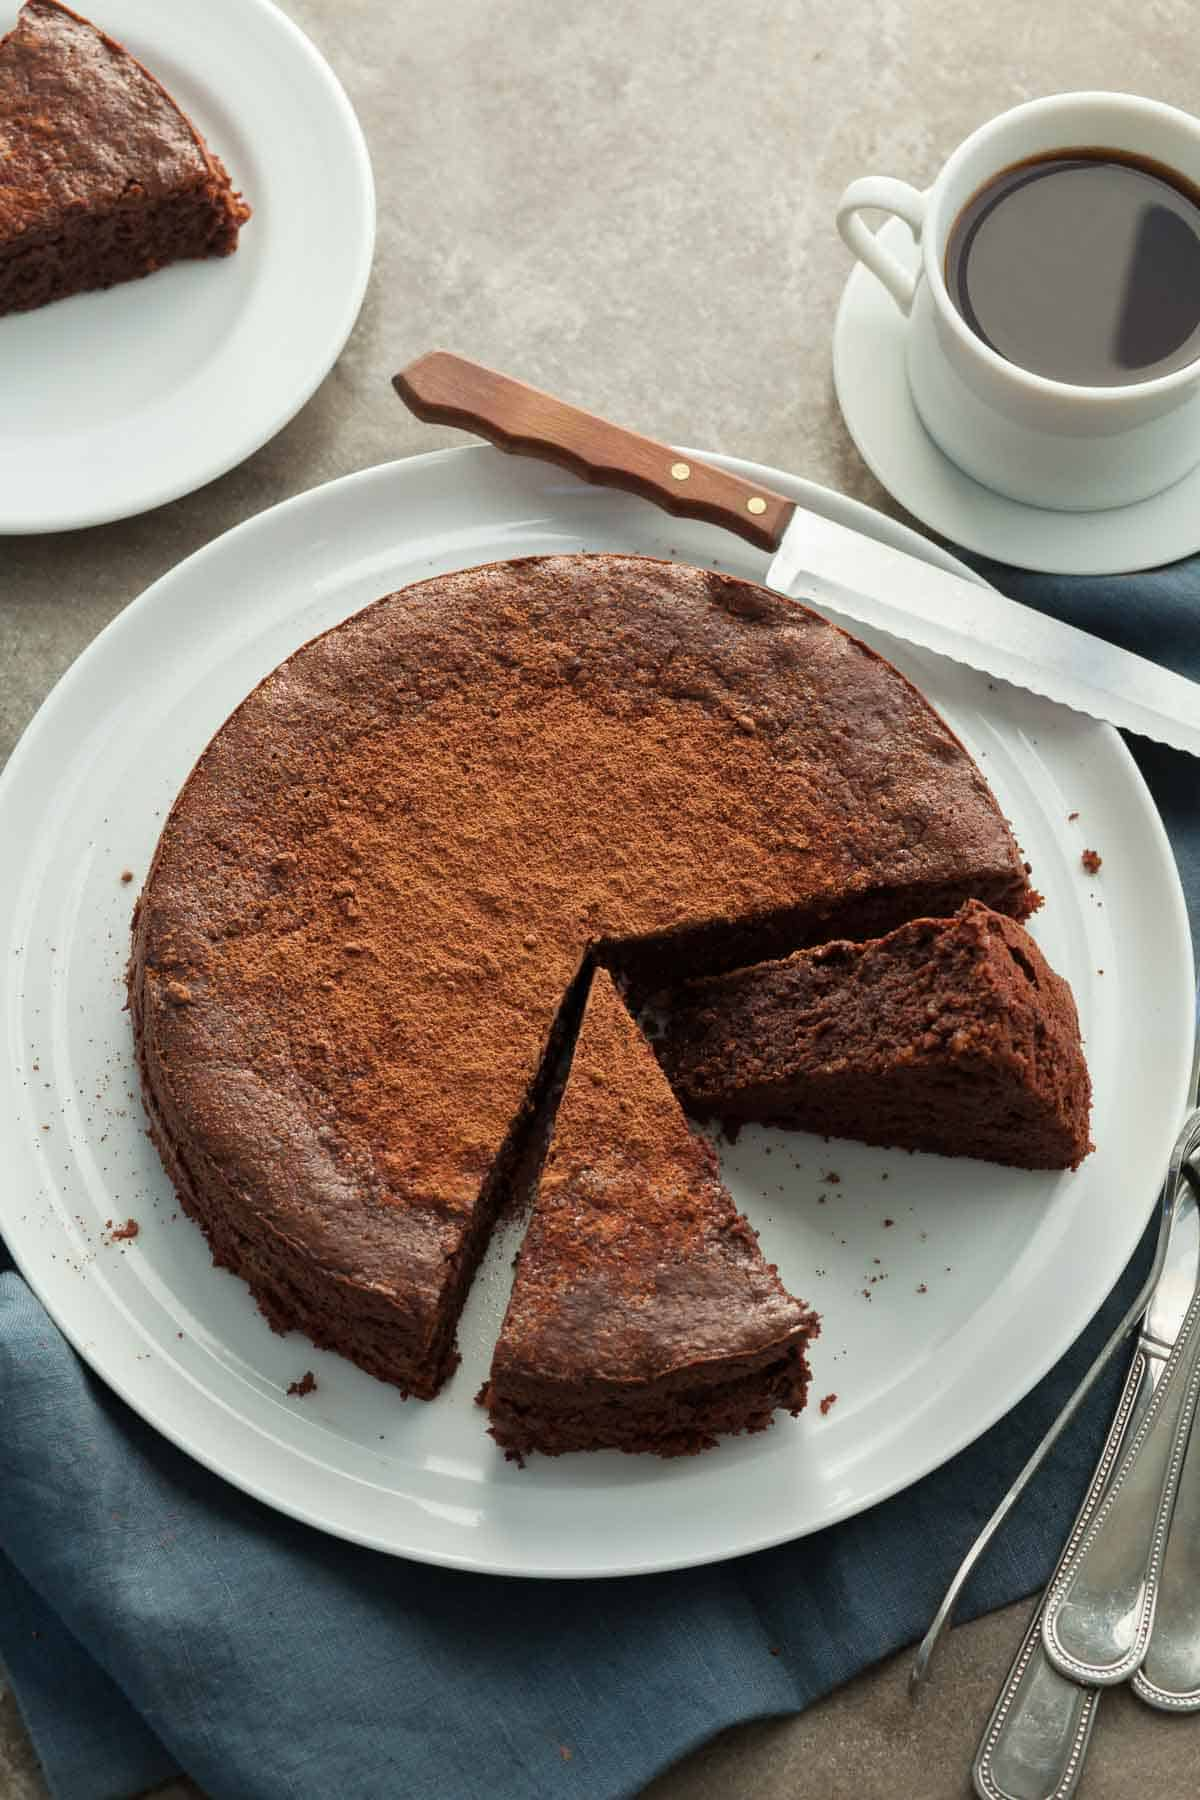 Recipes For Chocolate Cake Fillings